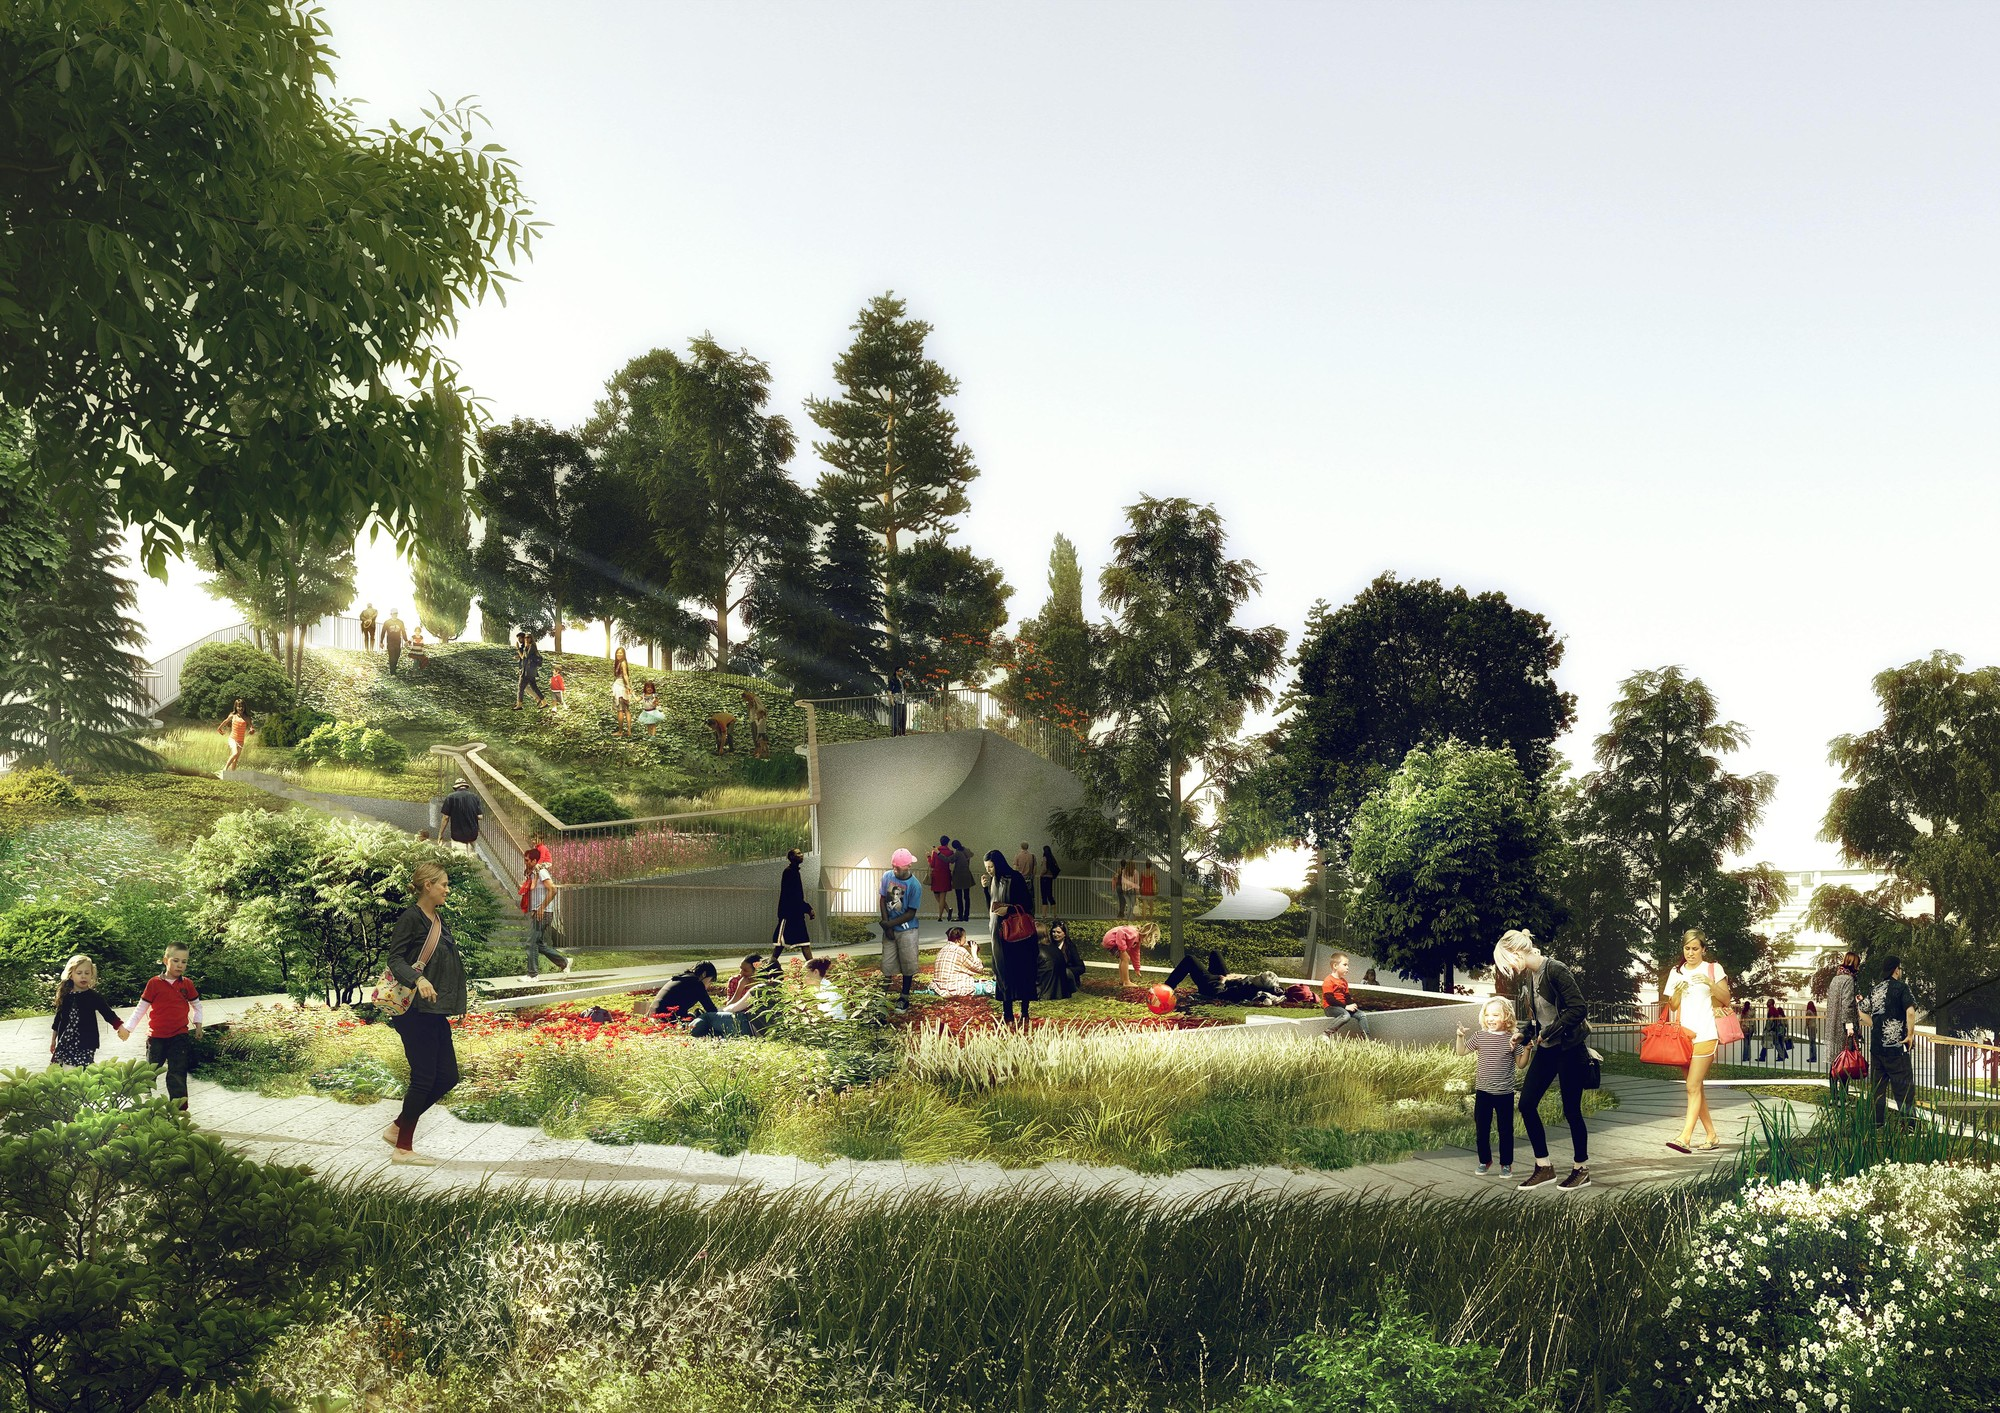 Conceptual view of Pier 55's rolling landscape. Image © Pier55, Inc. and Heatherwick Studio, Renders by Luxigon